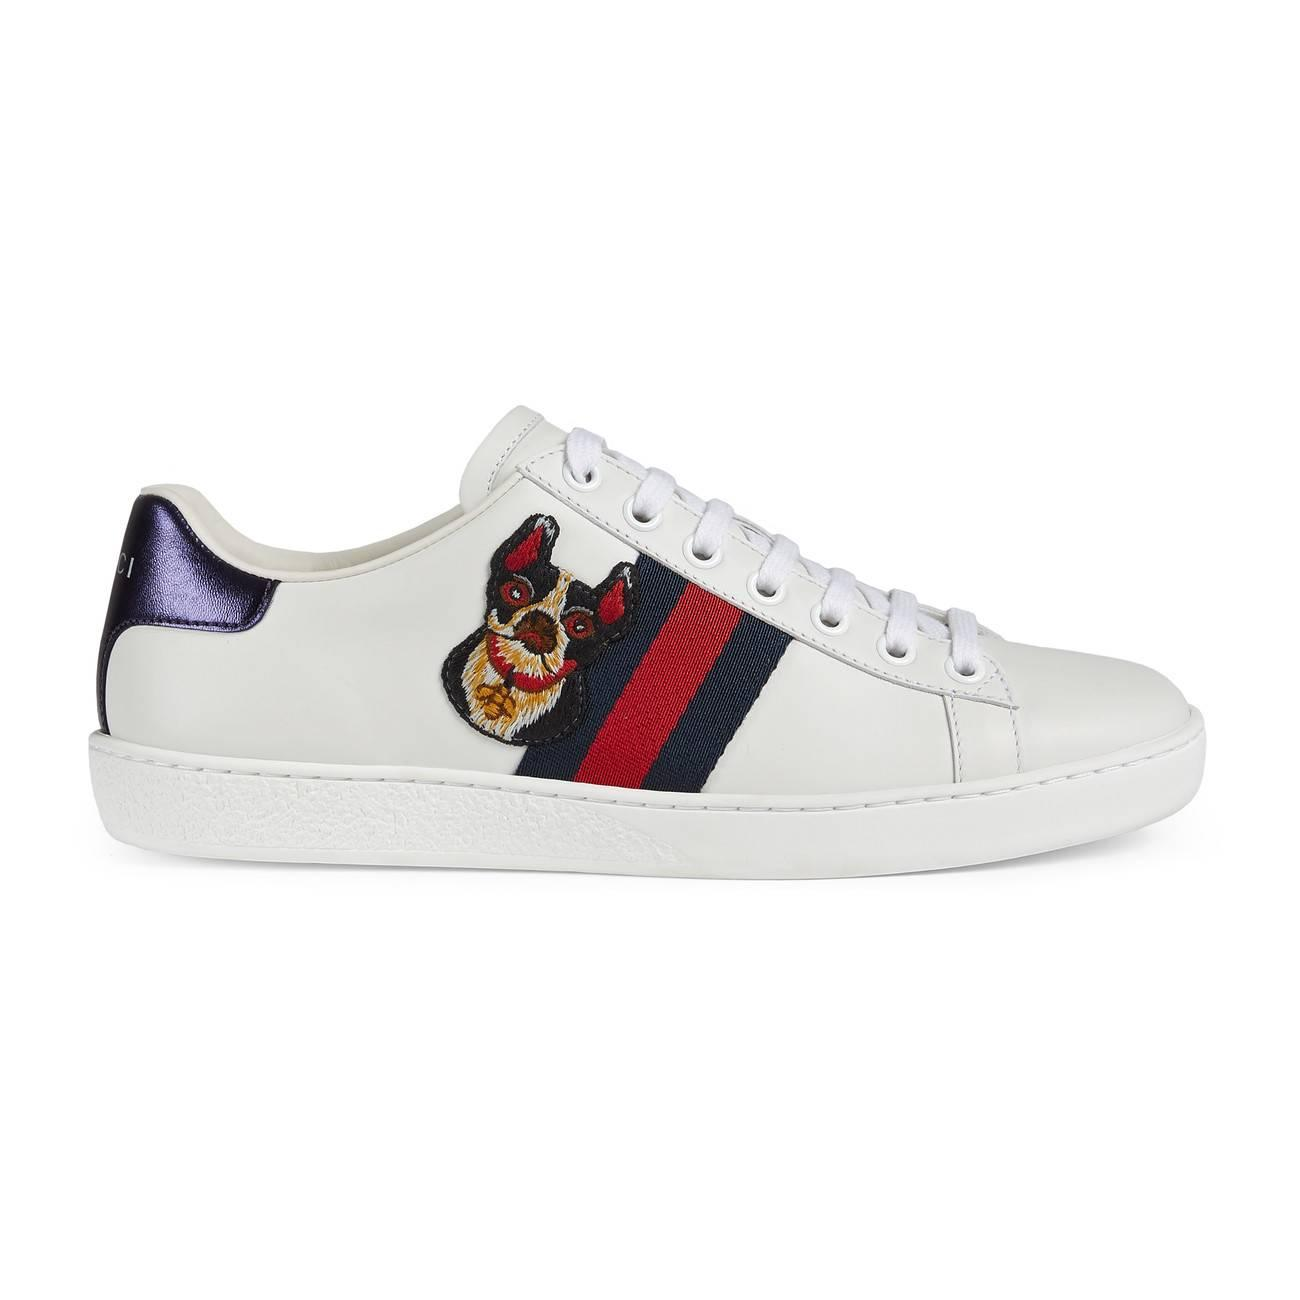 1edcd428c59 Lyst - Gucci Women s Ace Embroidered Sneaker White in White